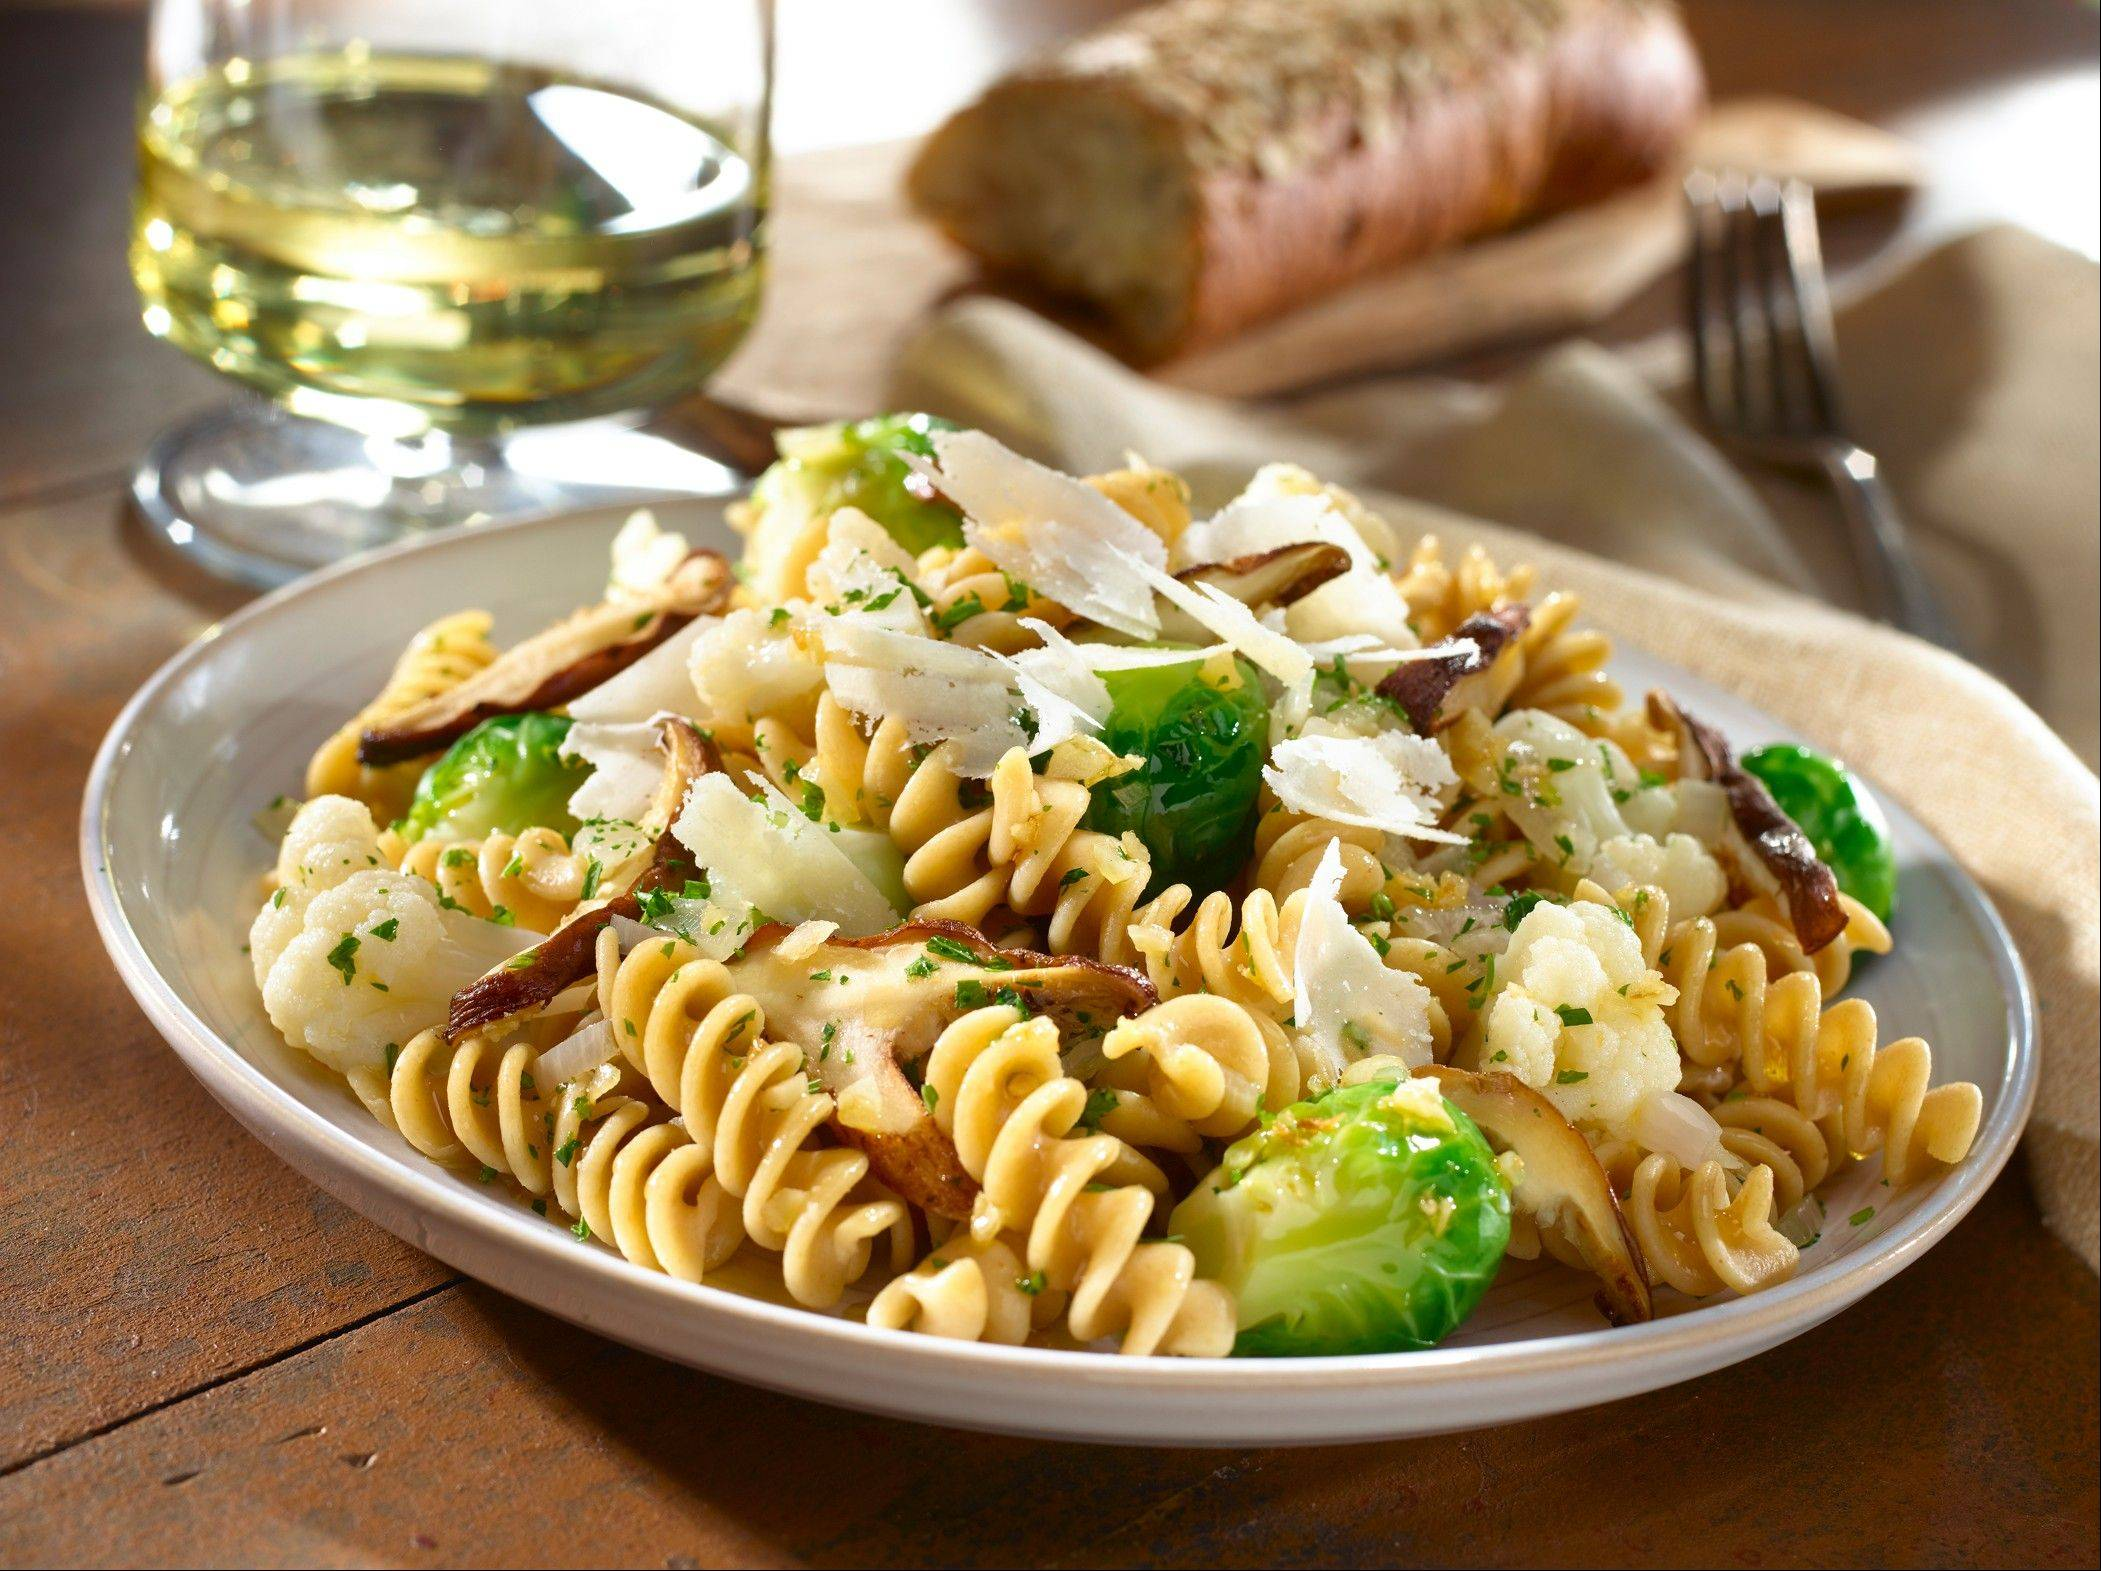 Brussels sprout, Cauliflower and Shiitake Fusilli